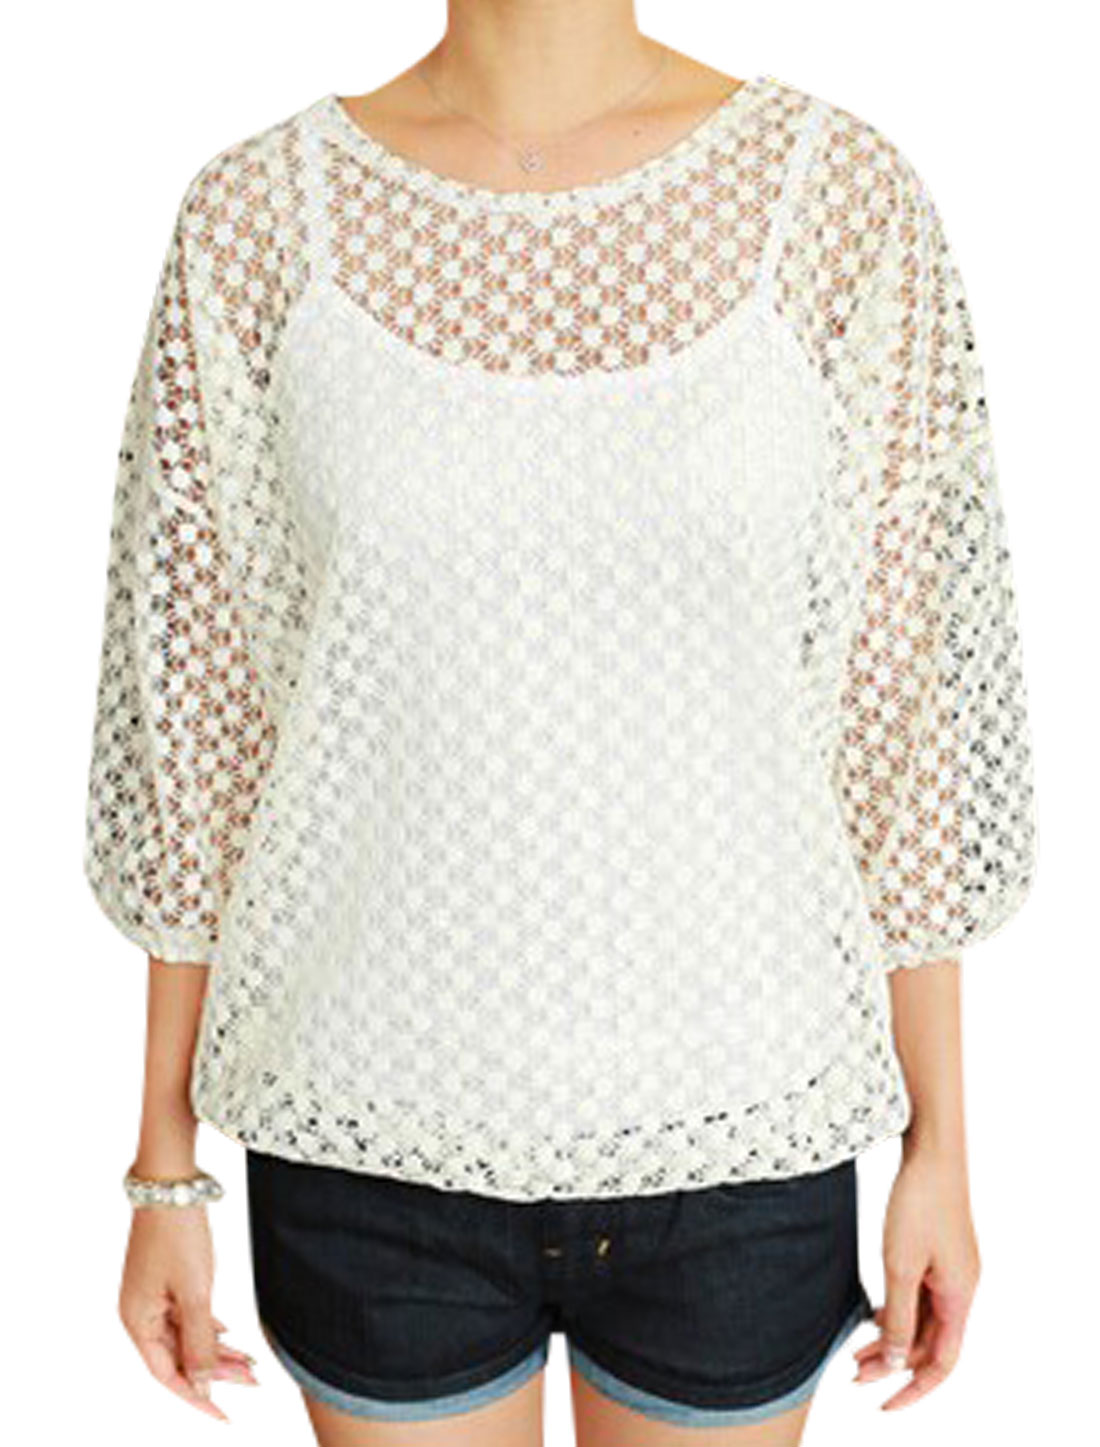 Women Round Neck Crochet 3/4 Batwing Sleeves Pullover Casual Top Beige S